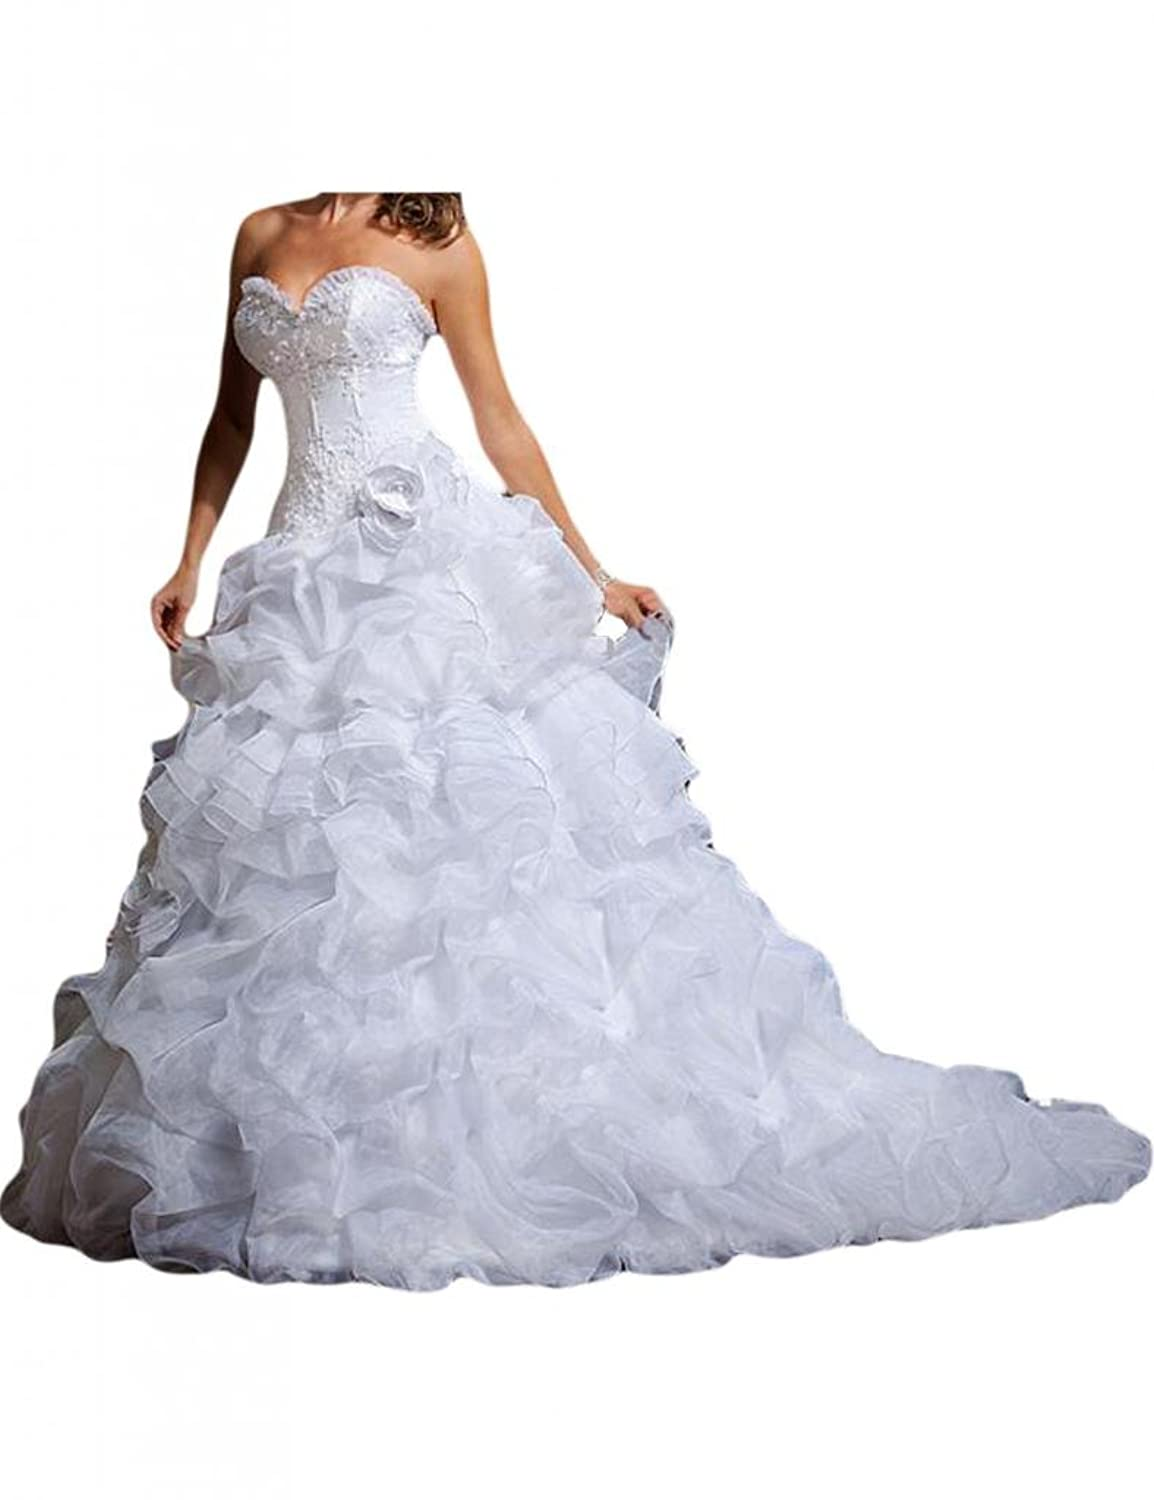 Gorgeous Bridal Detachable Skirt Organza Wedding Dress Short Bridal ...